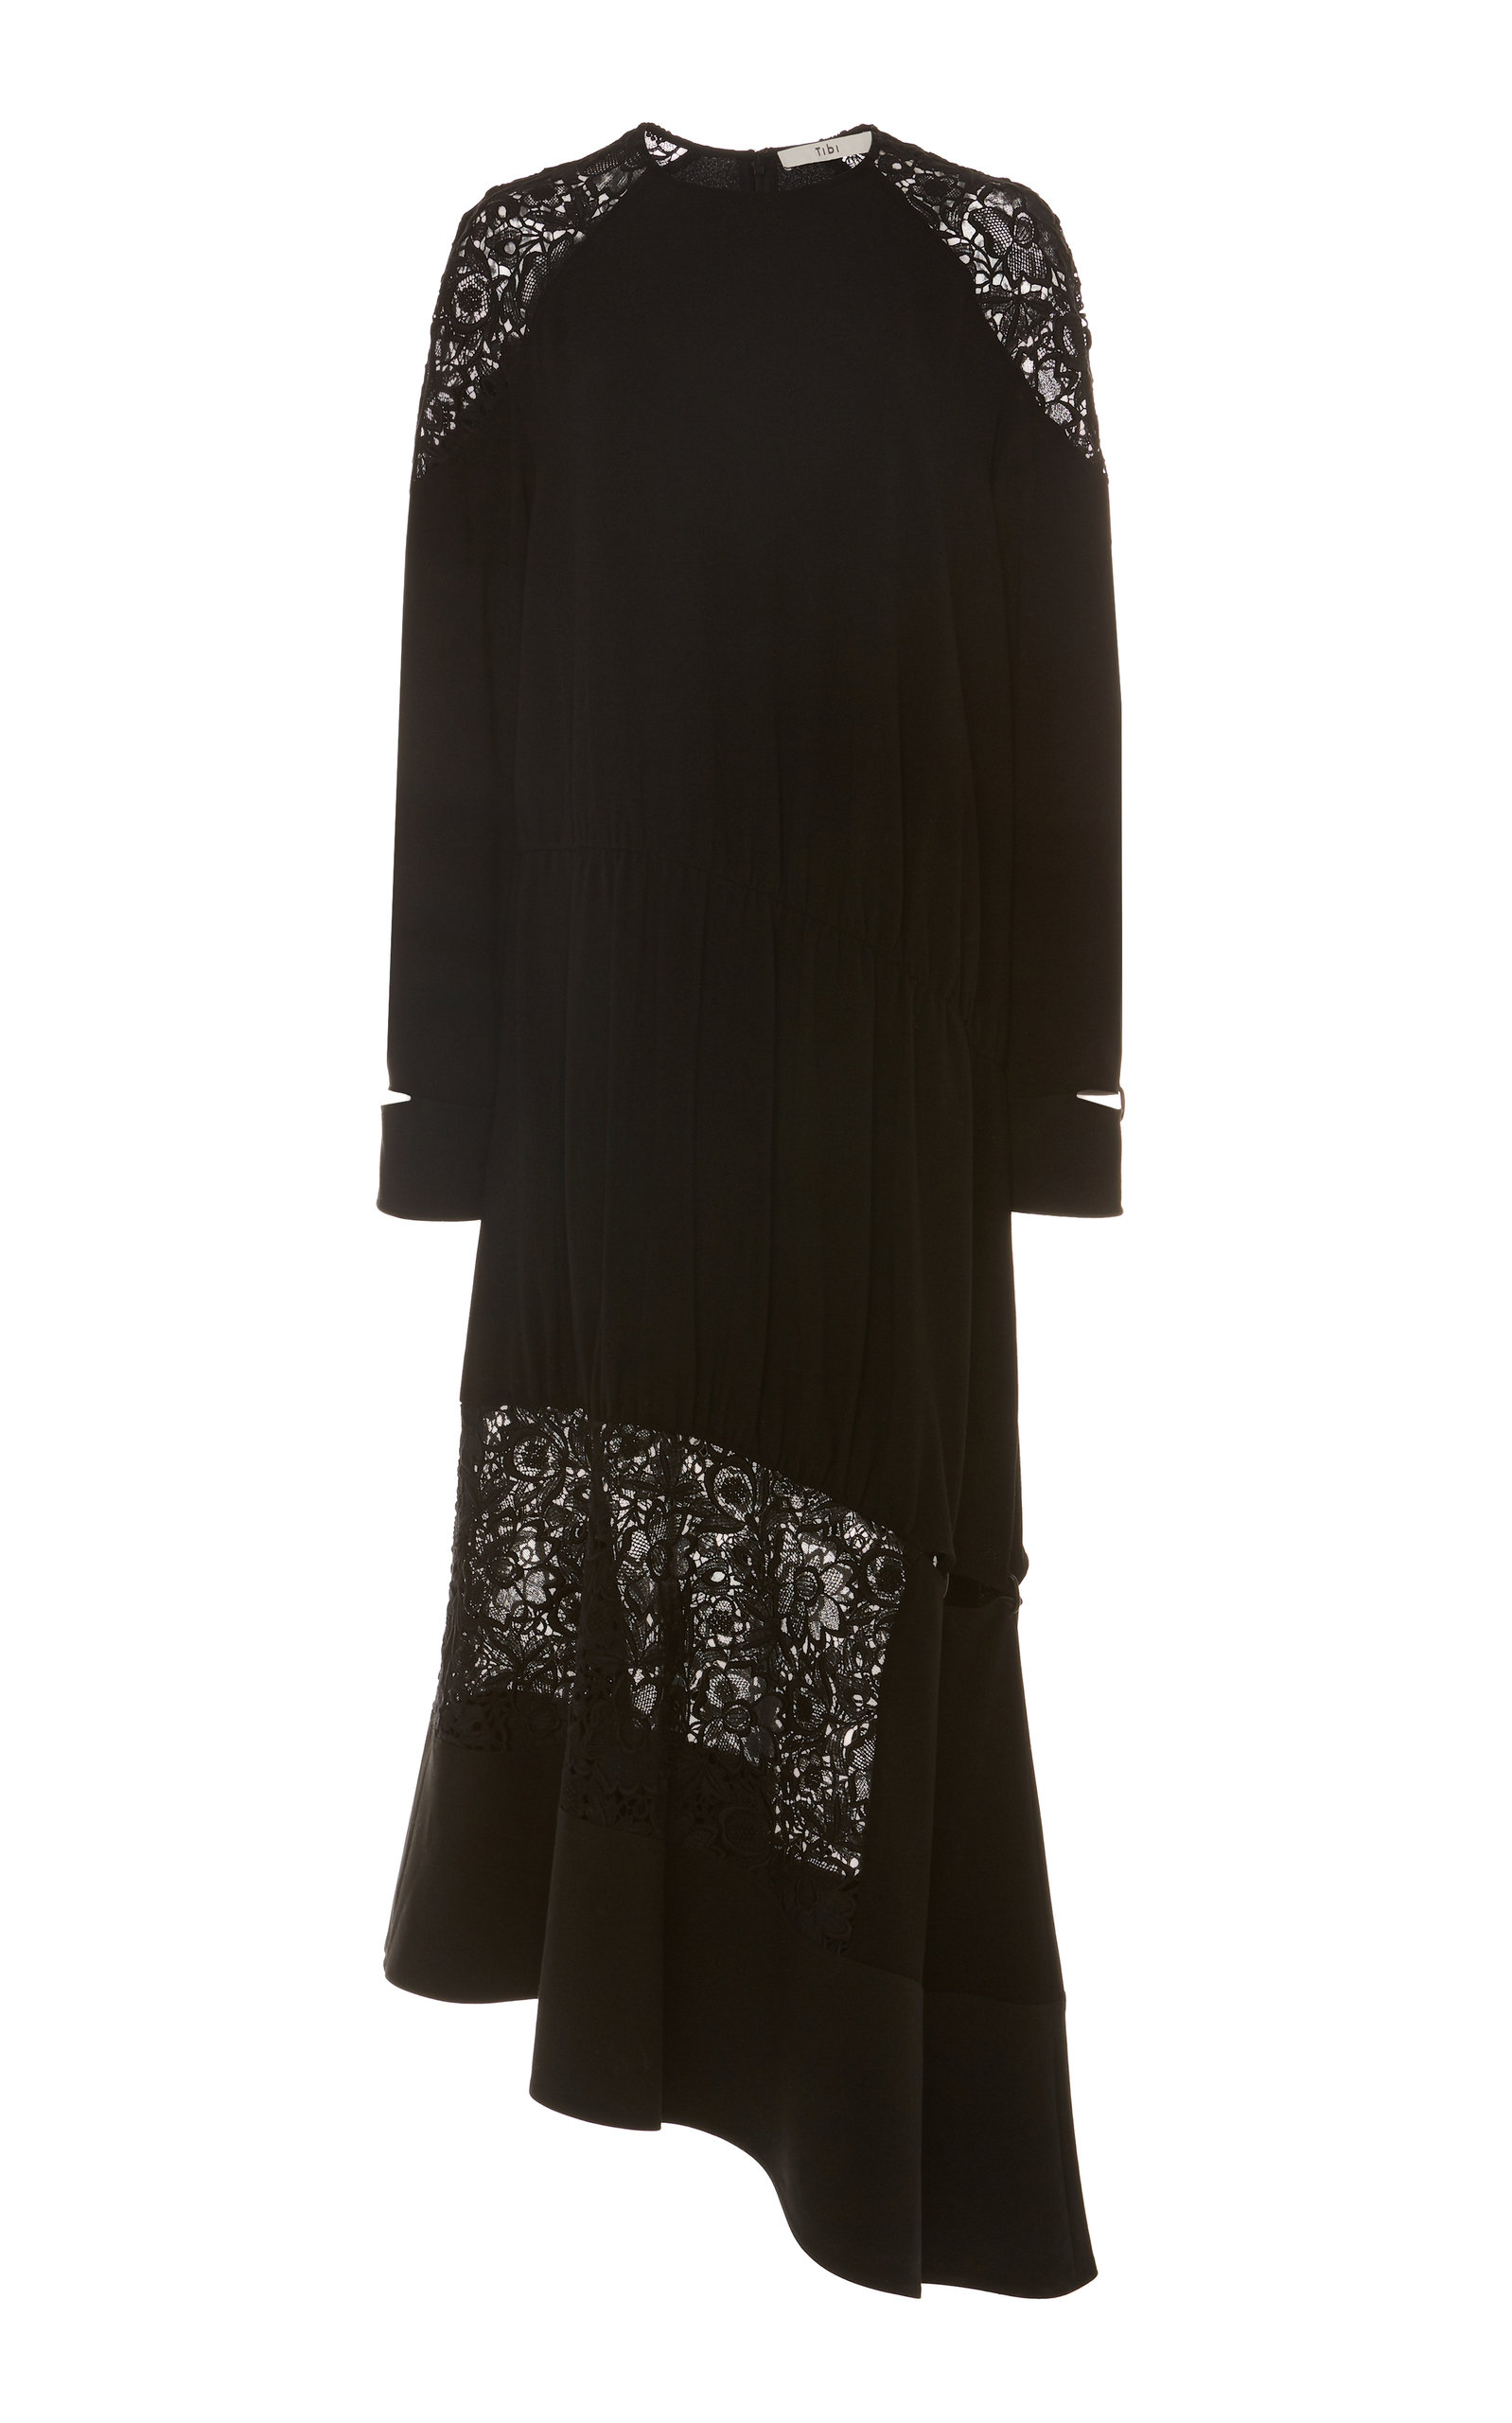 Tibi Dresses Asymmetric Lace-Trimmed Crepe Dress